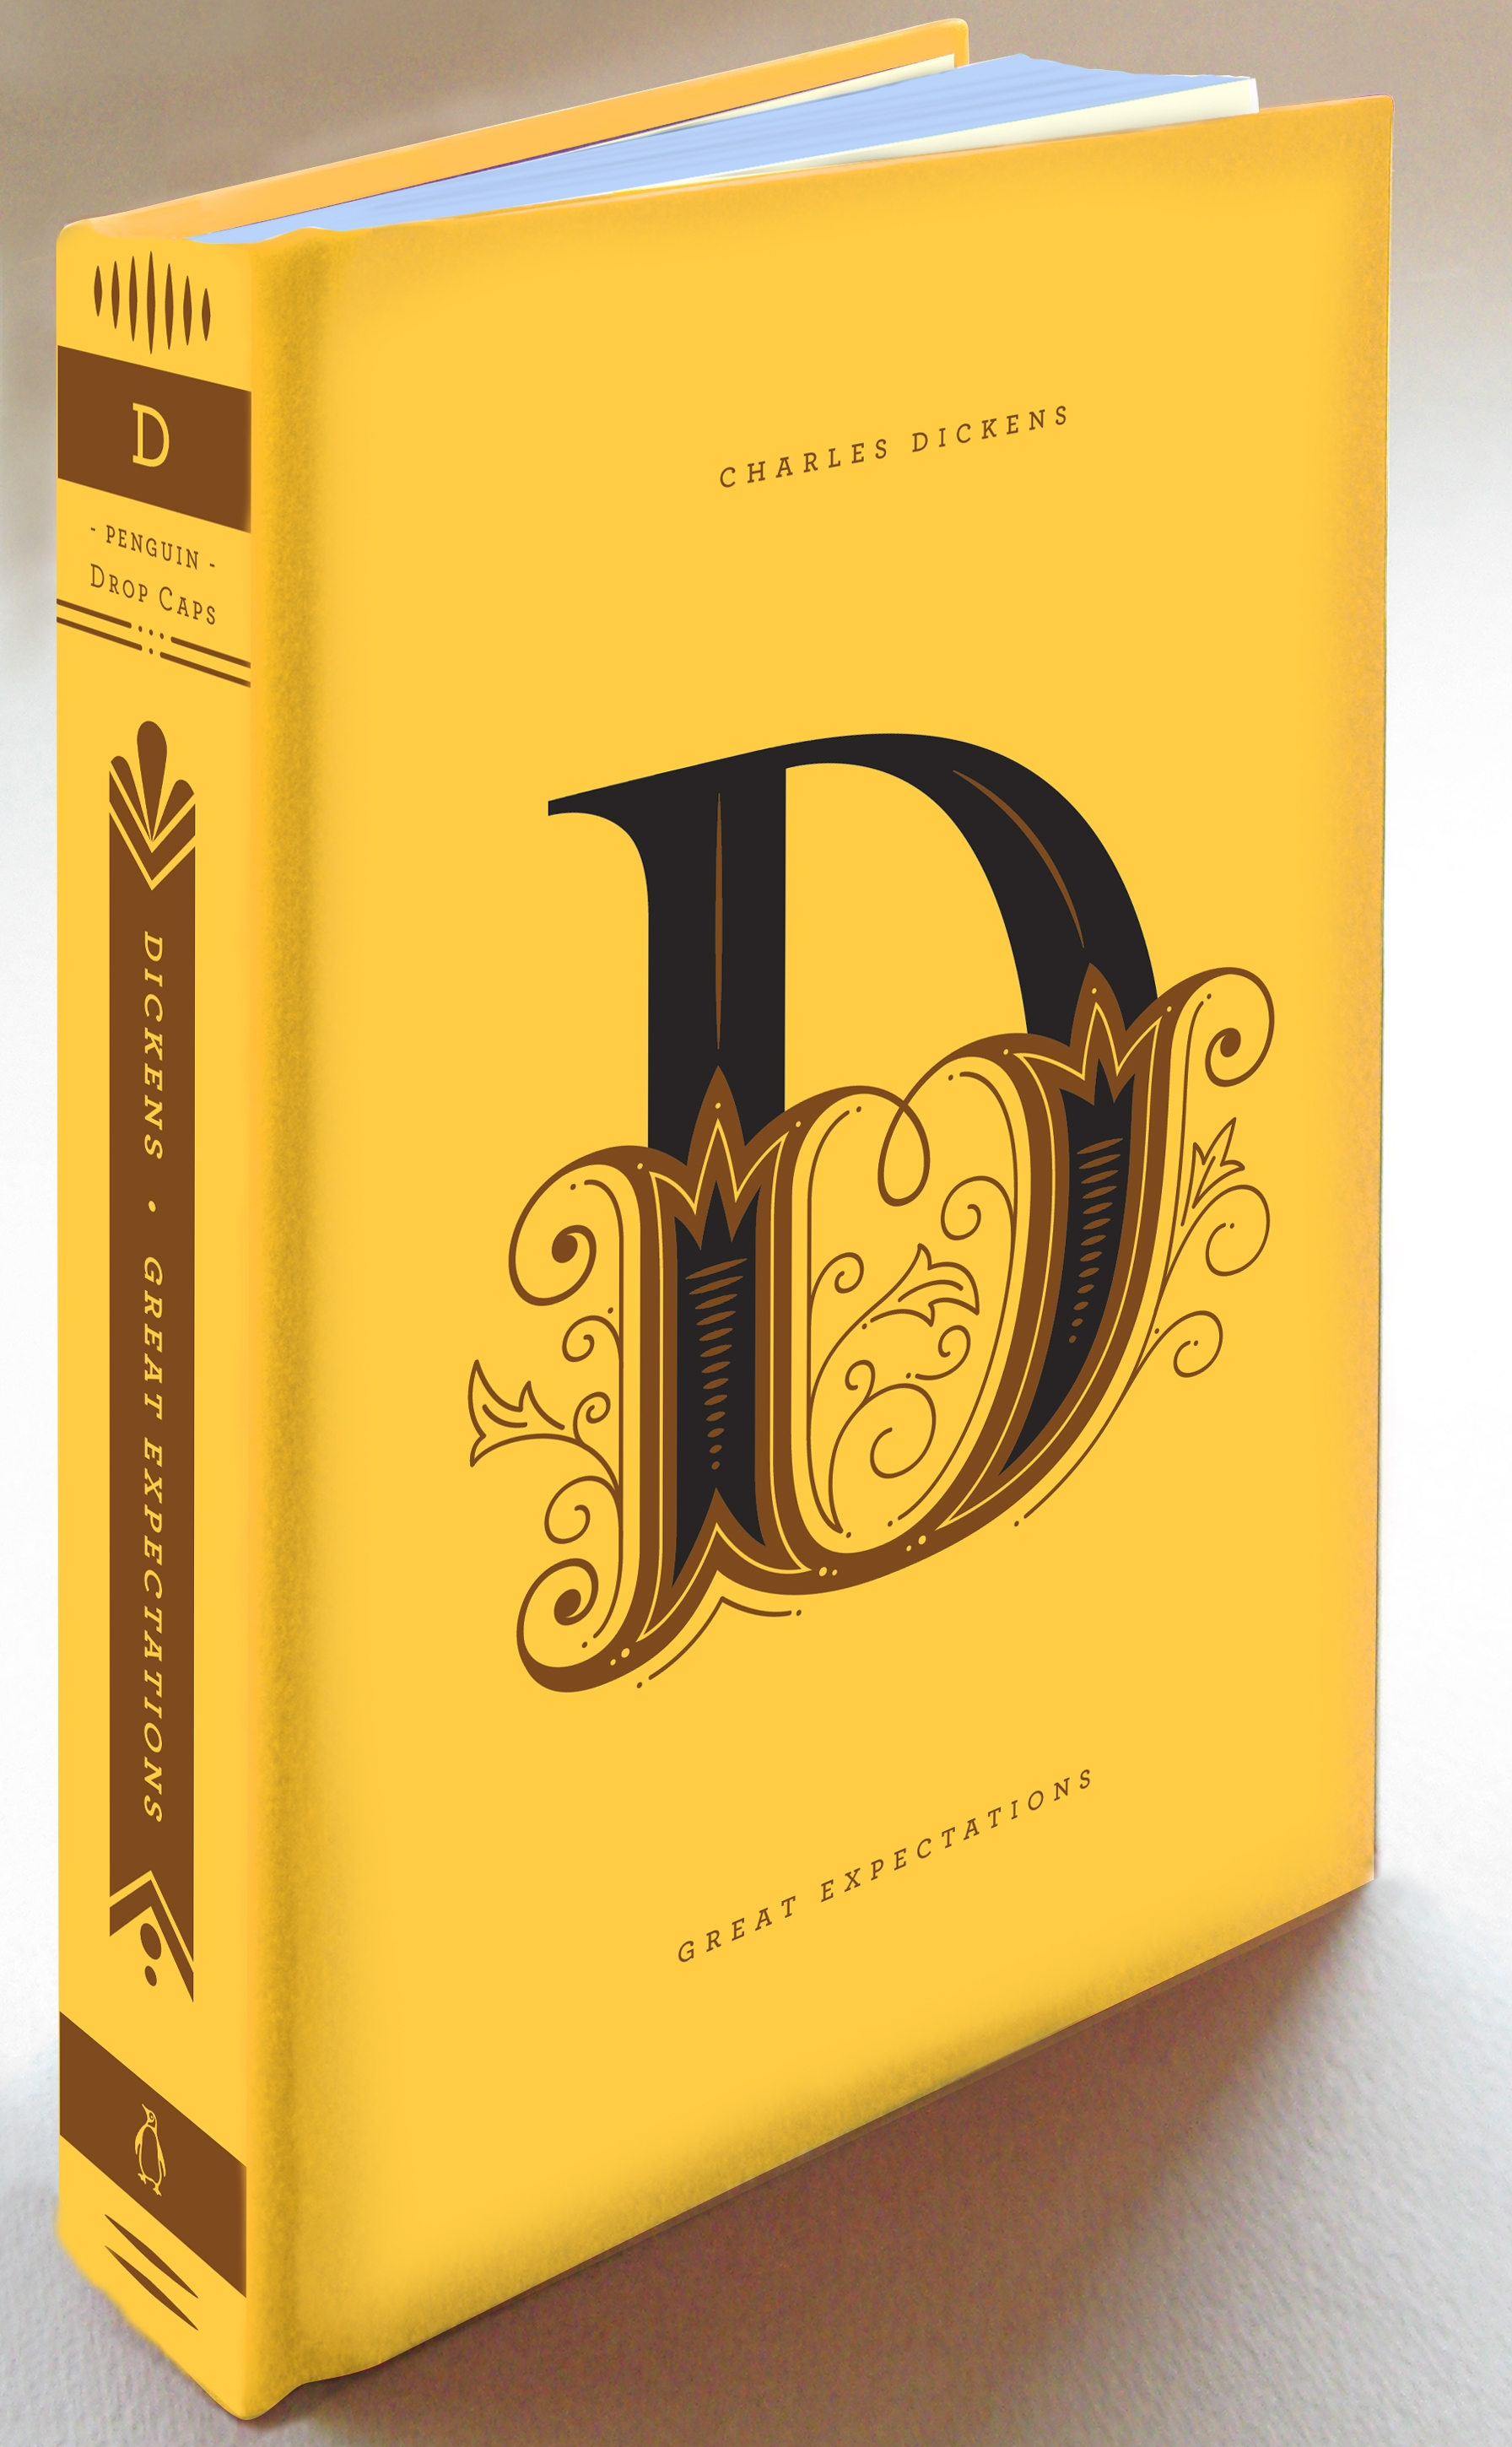 Typographic Book Cover Letter : Penguin book covers get 'drop cap motifs for typography